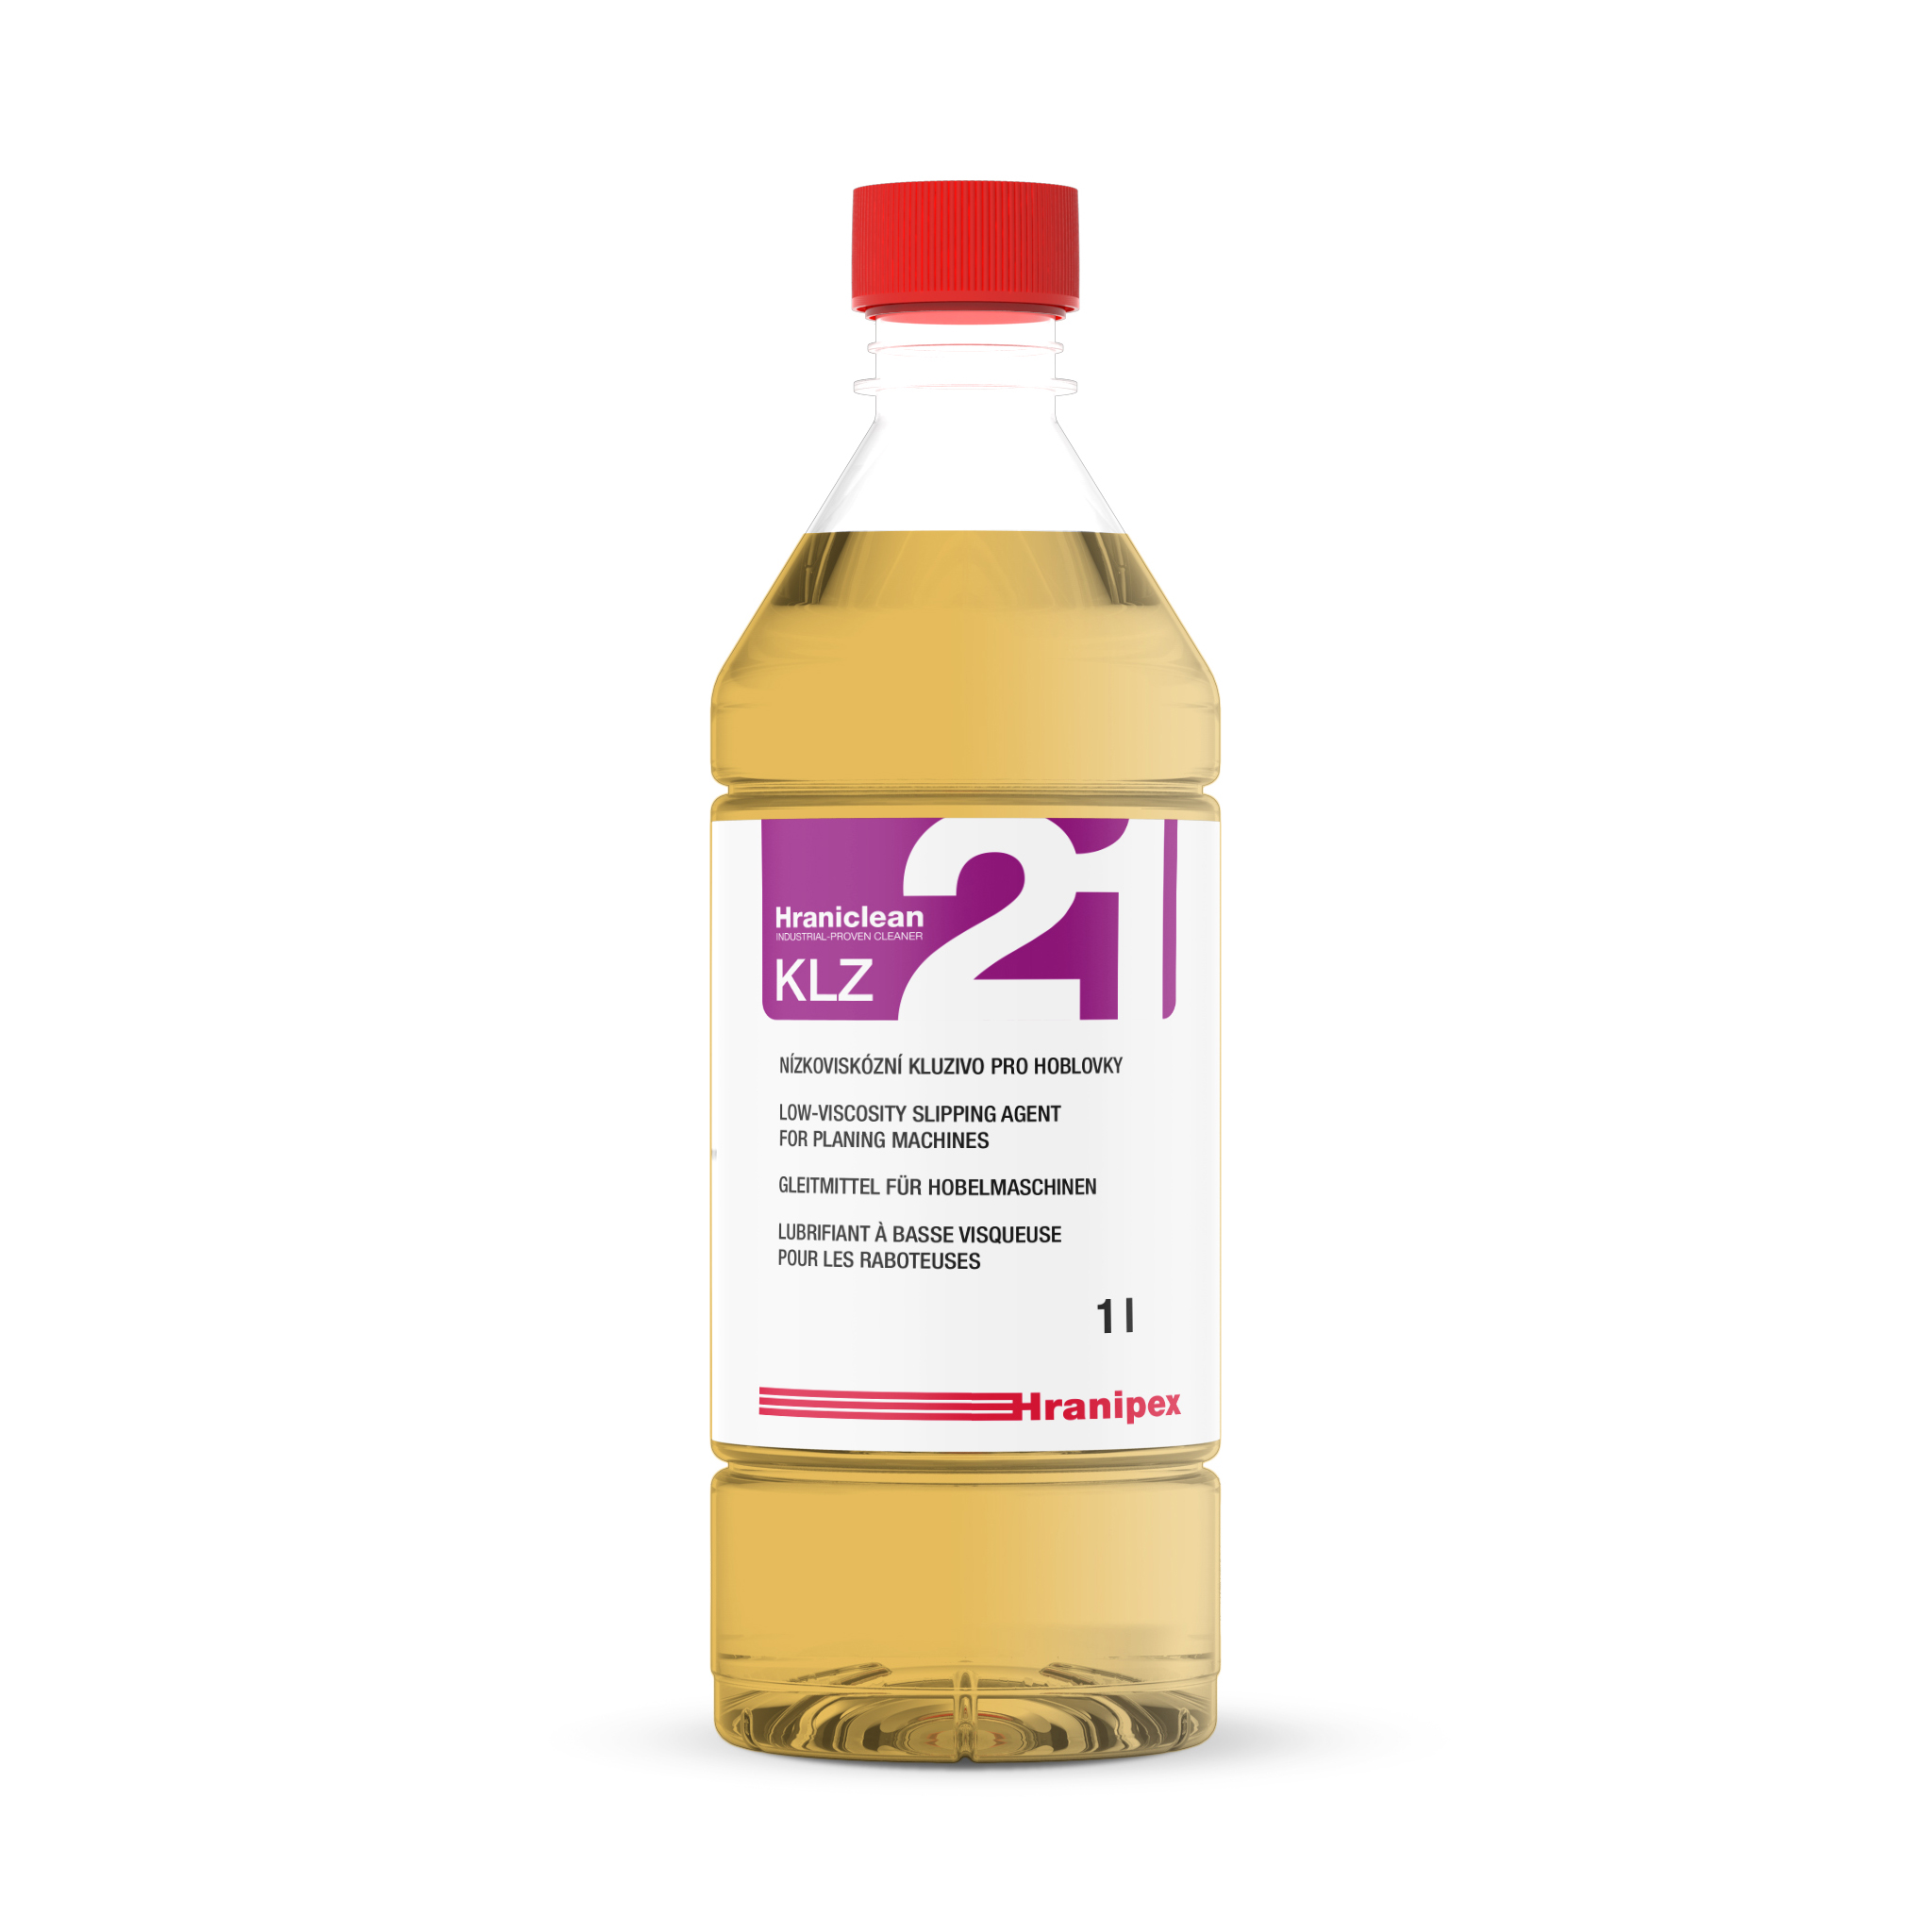 HRANICLEAN KLZ 21 Slipping Agent for Planing Machines 1 l